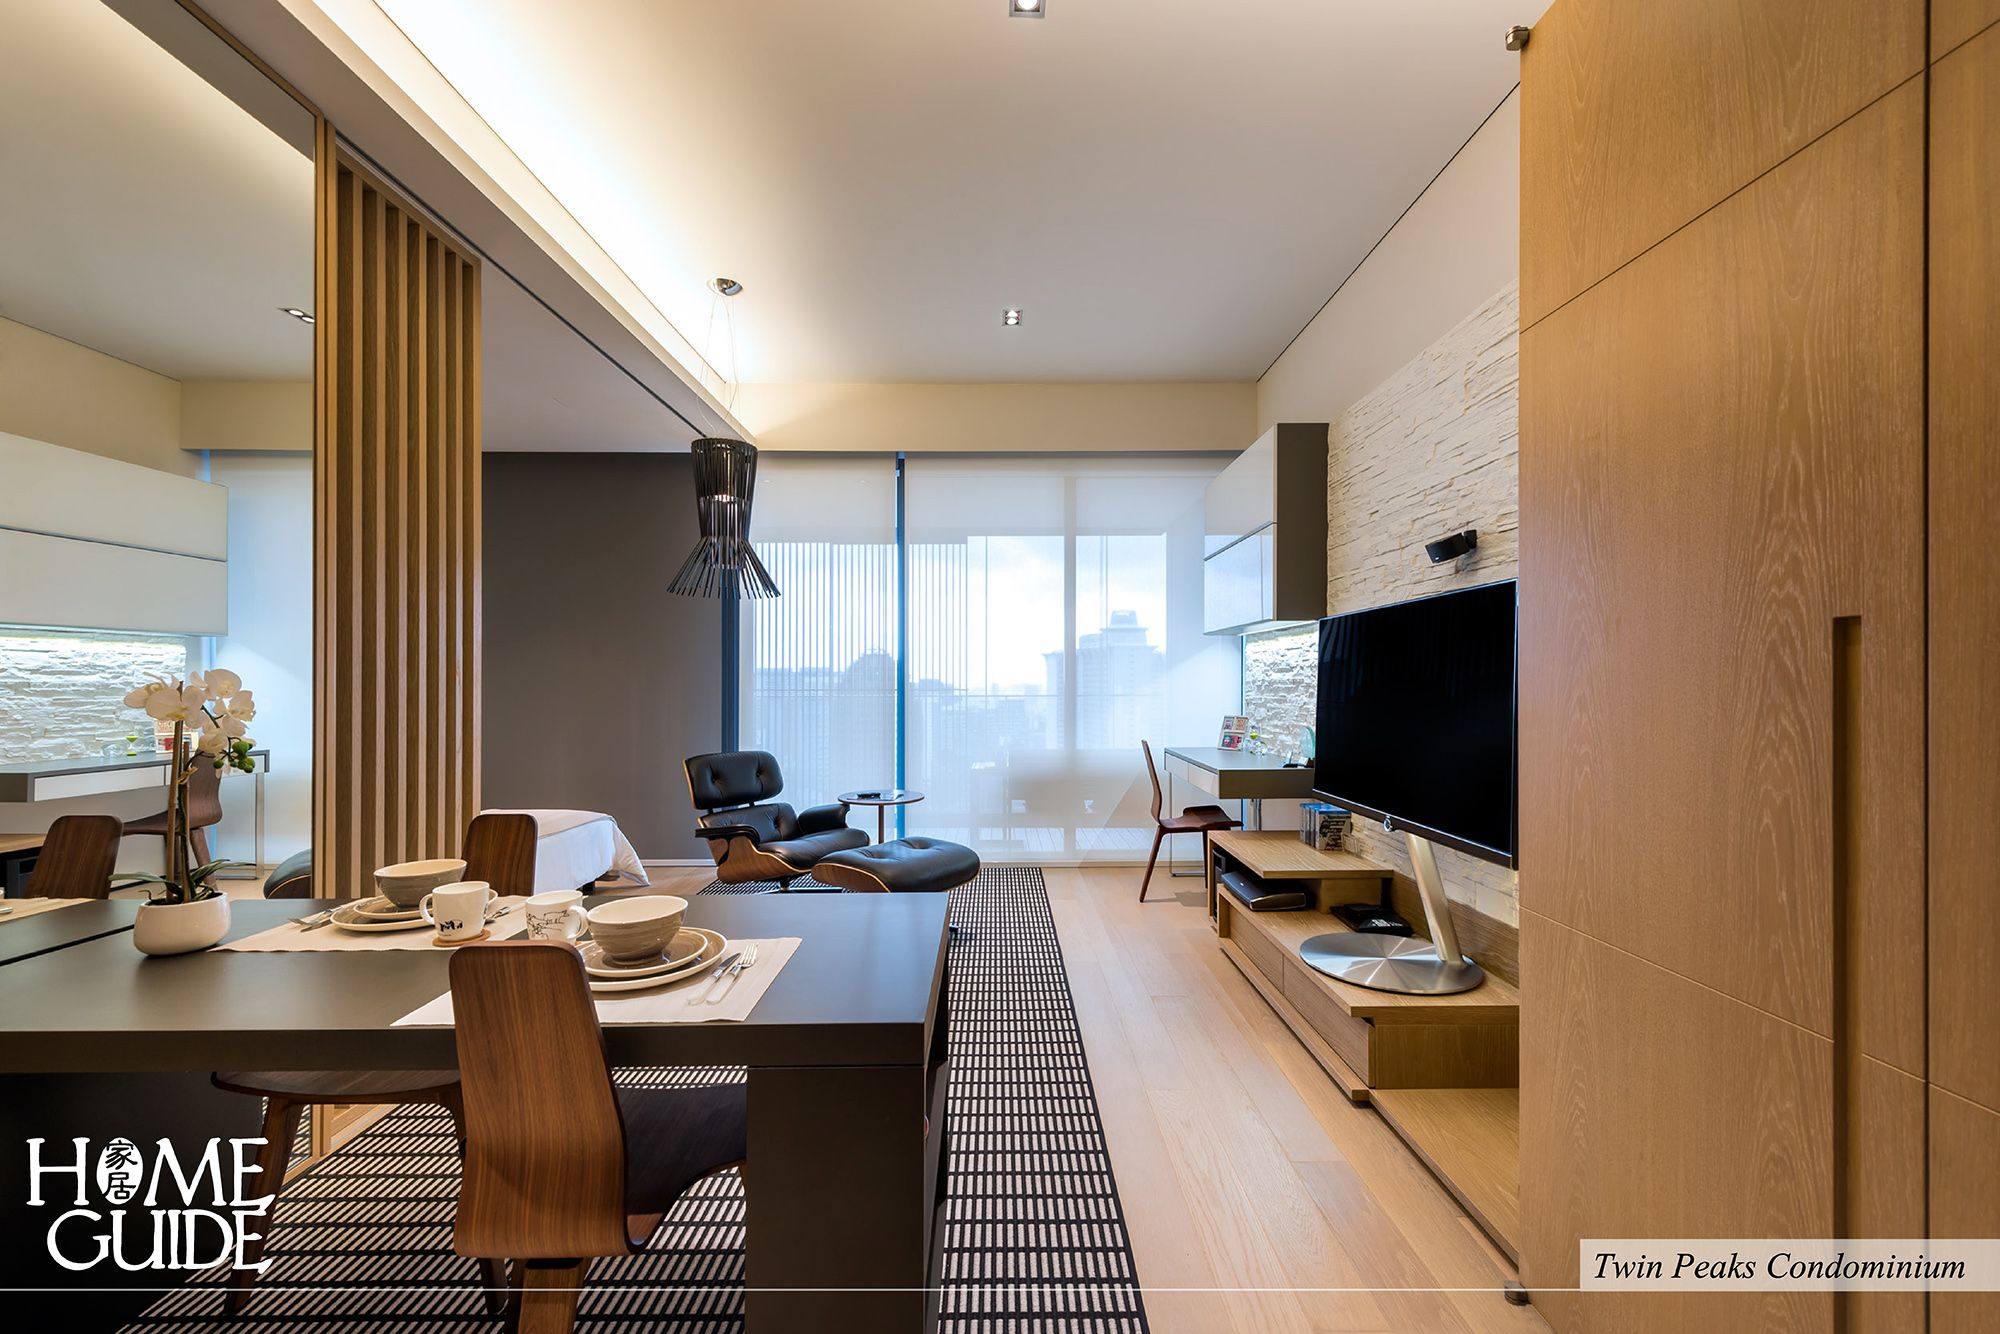 Sliding Partition Between The Living Room And Bedroom Allows You To Have An Intimacy Privacy